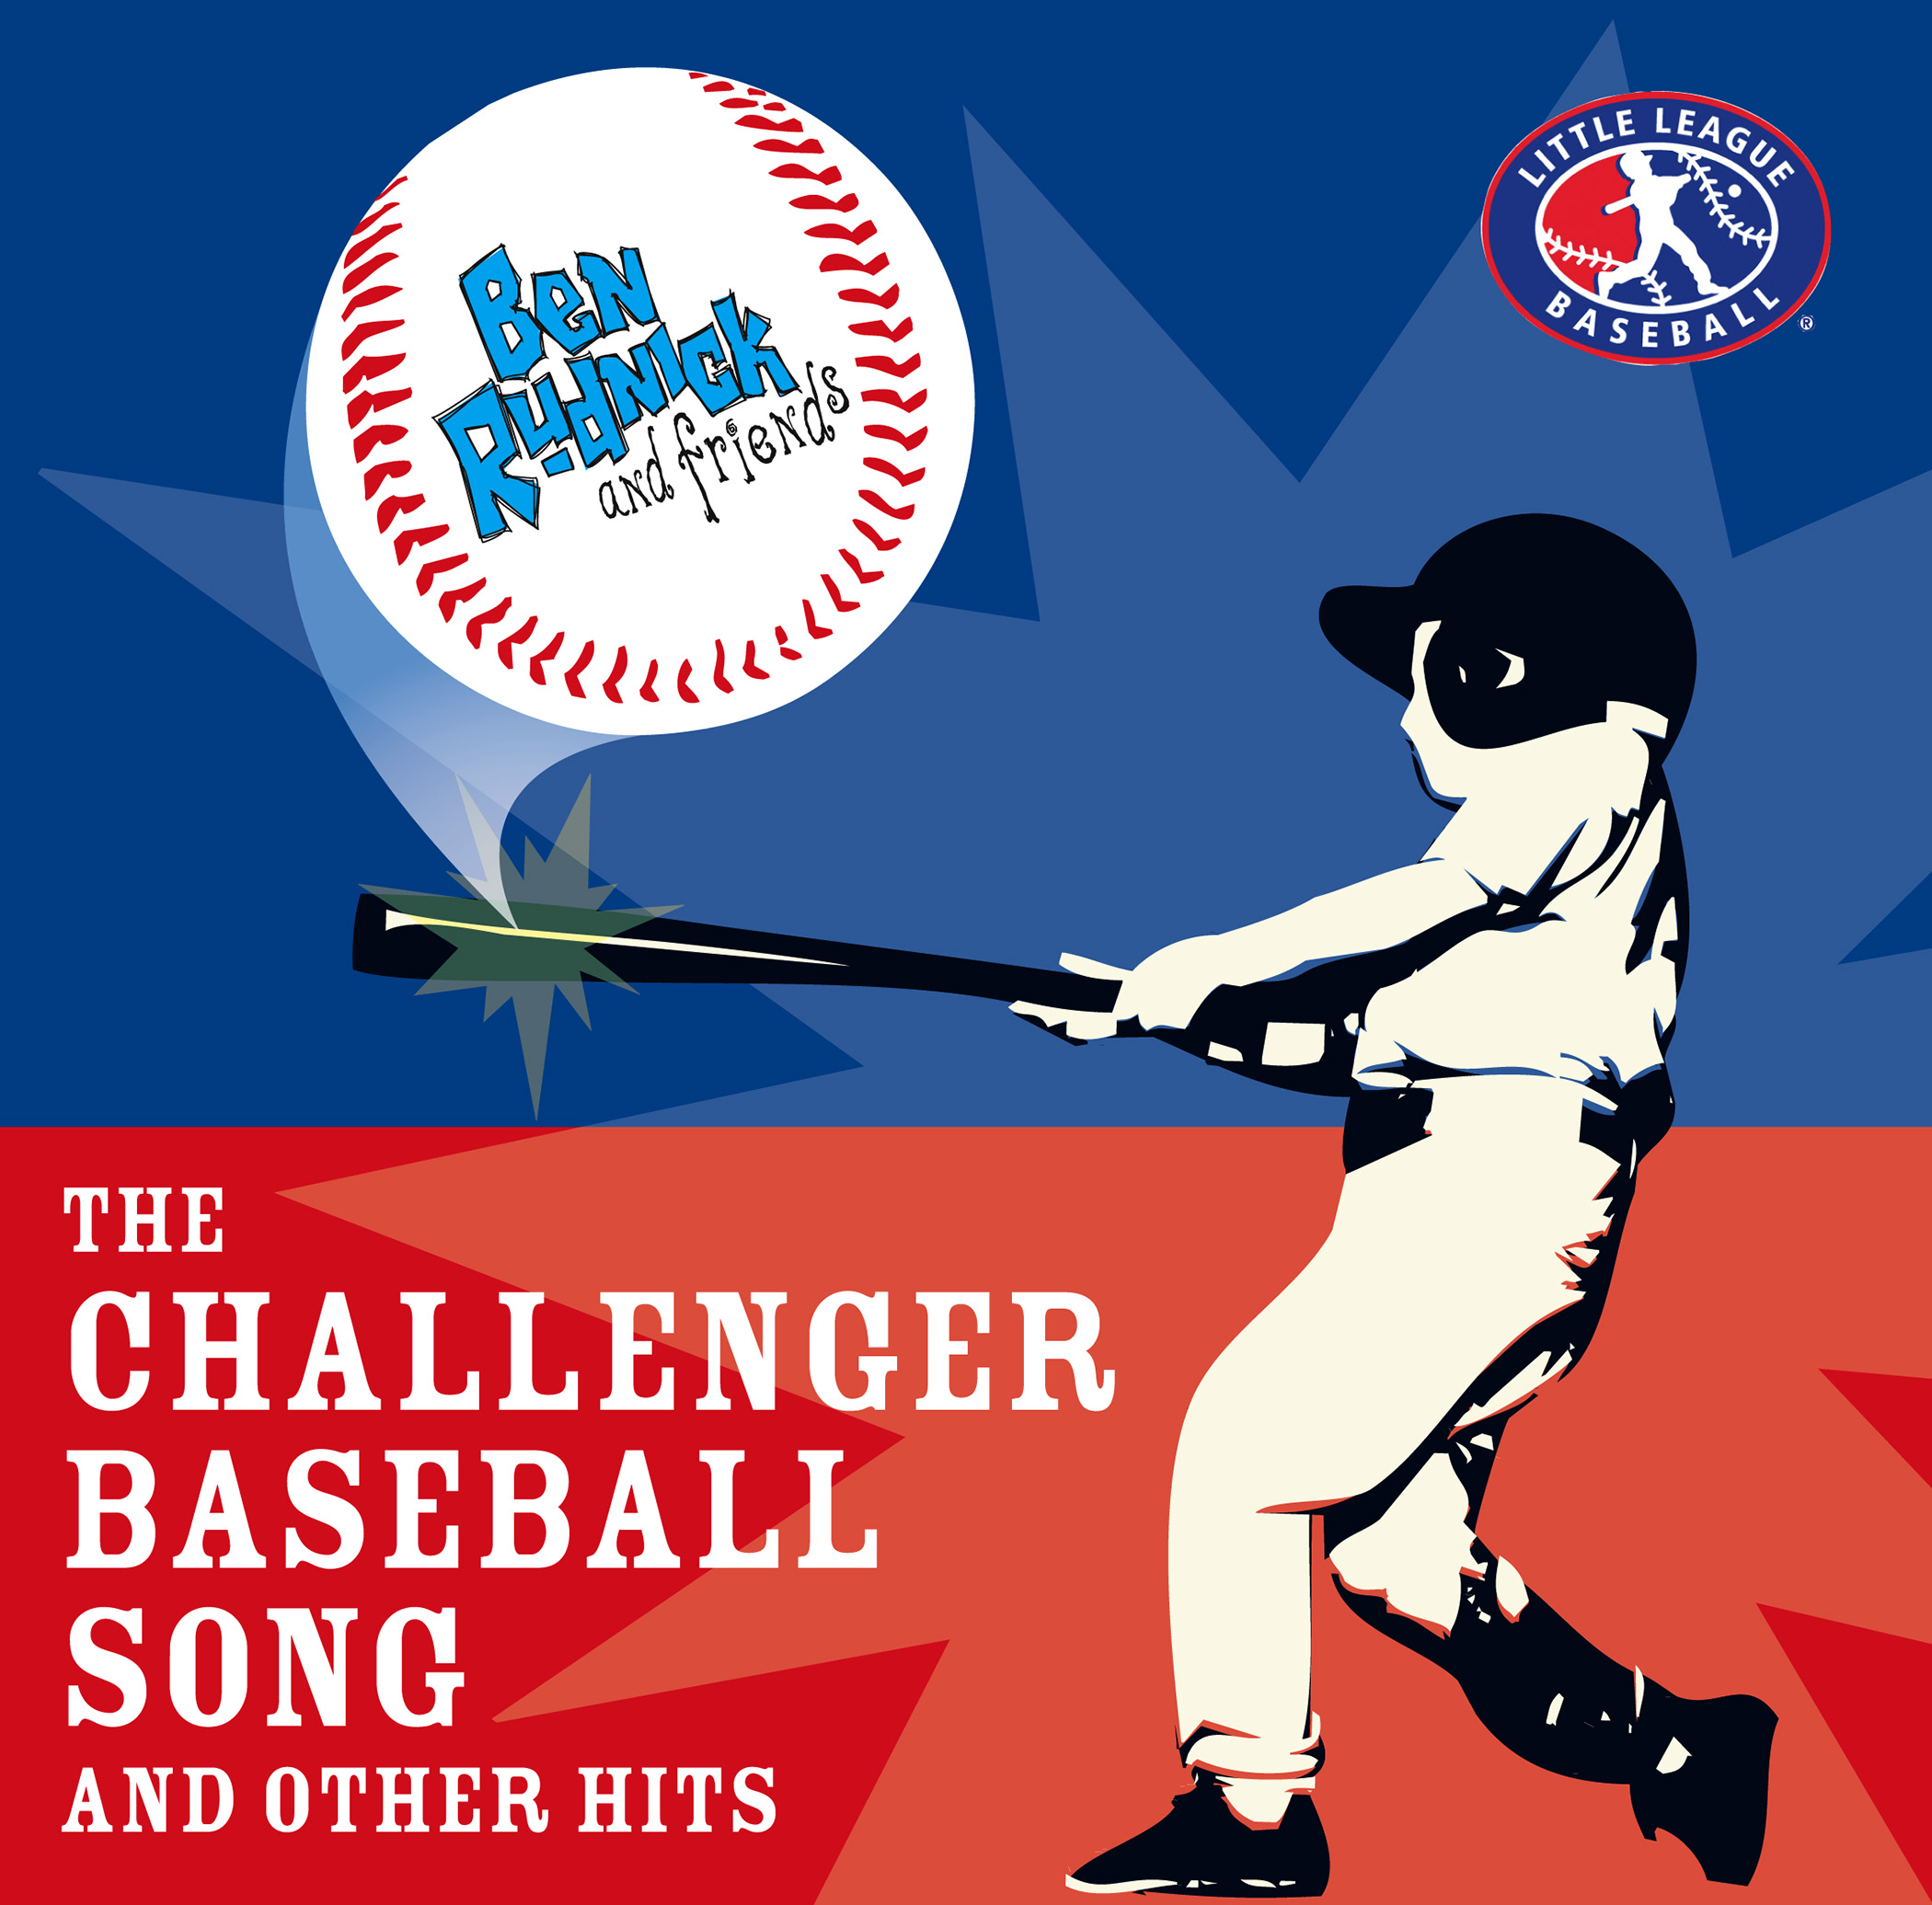 The Challenger Baseball Song